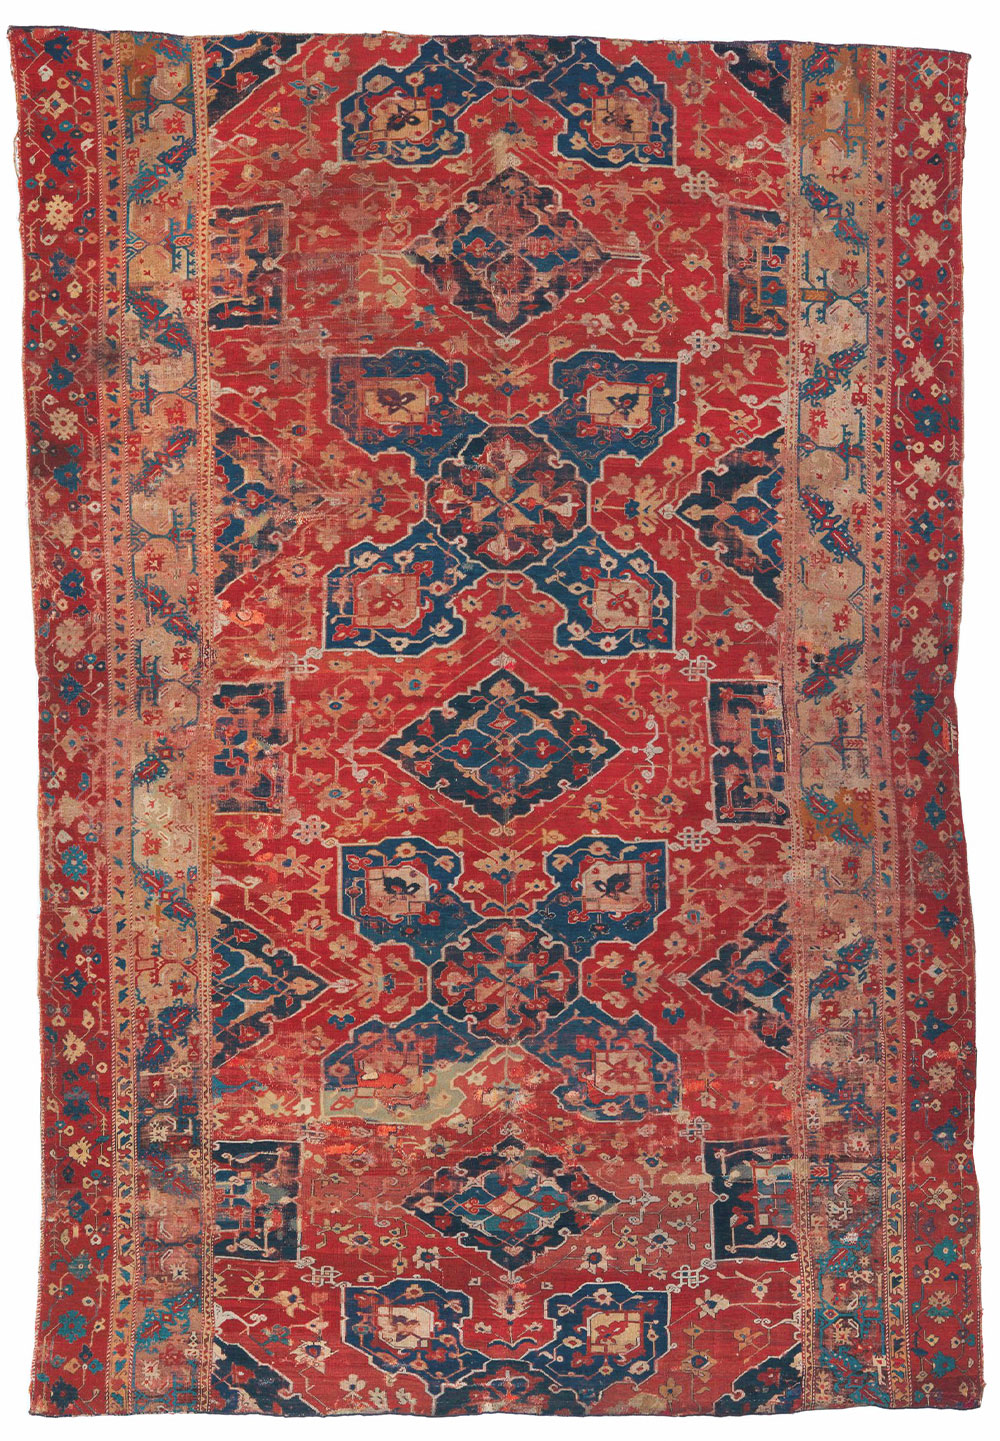 """3 The Lecco Four-Lobed Star Ushak carpet fragment (and border detail), west Anatolia, ca. 1475–1525. Wool pile on a wool foundation, 2.70 x 3.95 m (8' 10"""" x 13' 0""""). Private collection, Italy"""